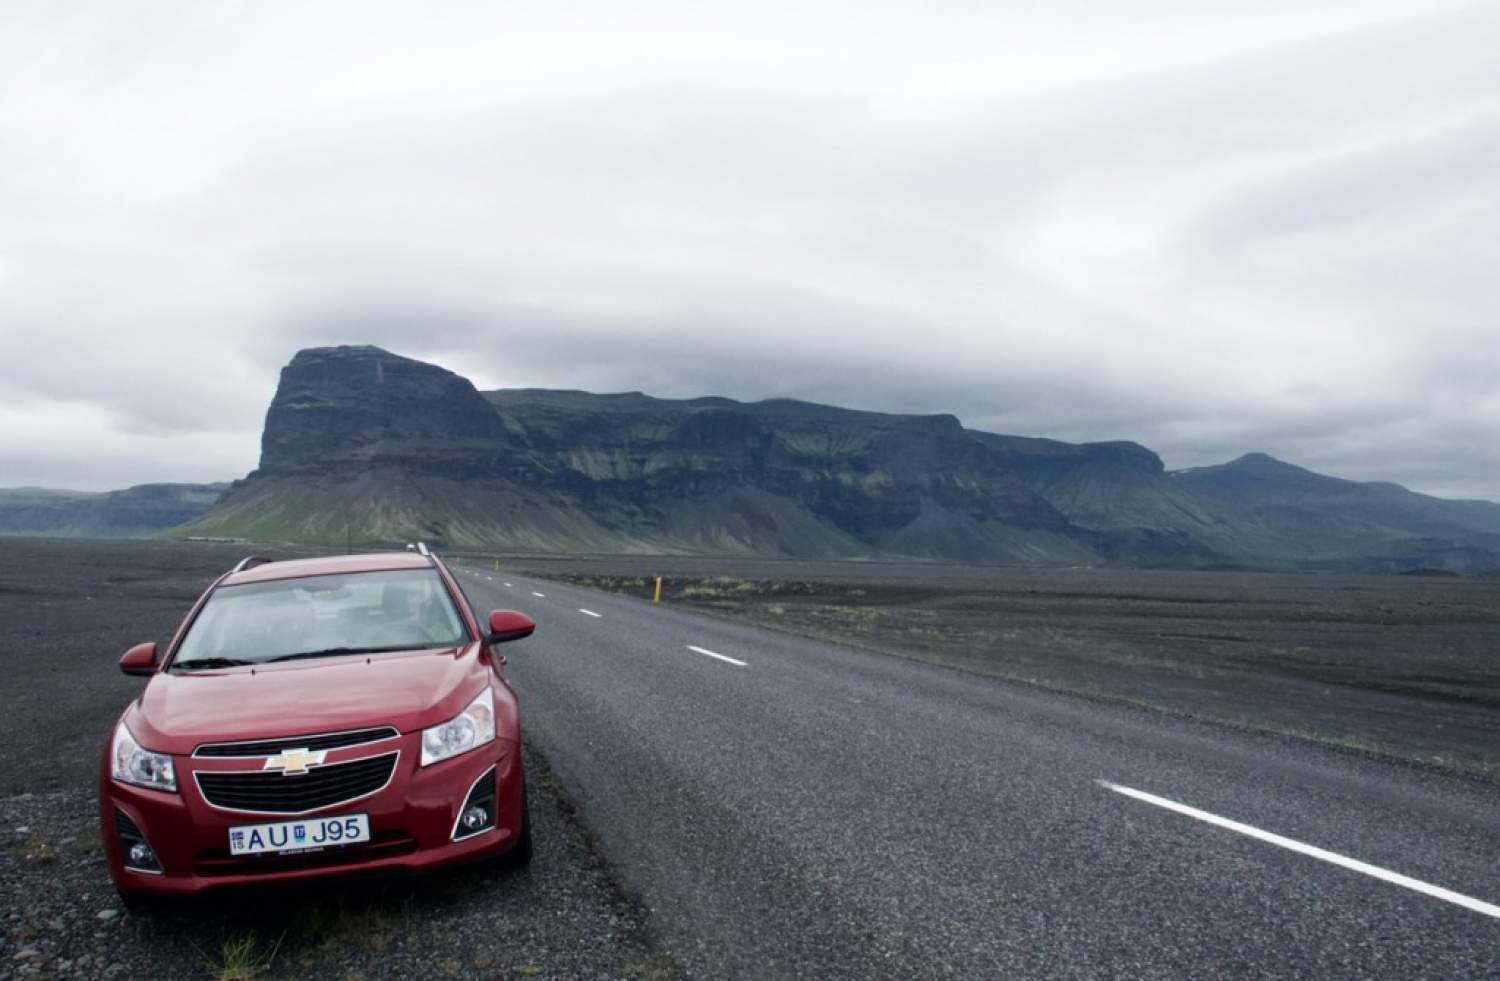 Road trips: stop to admire the view